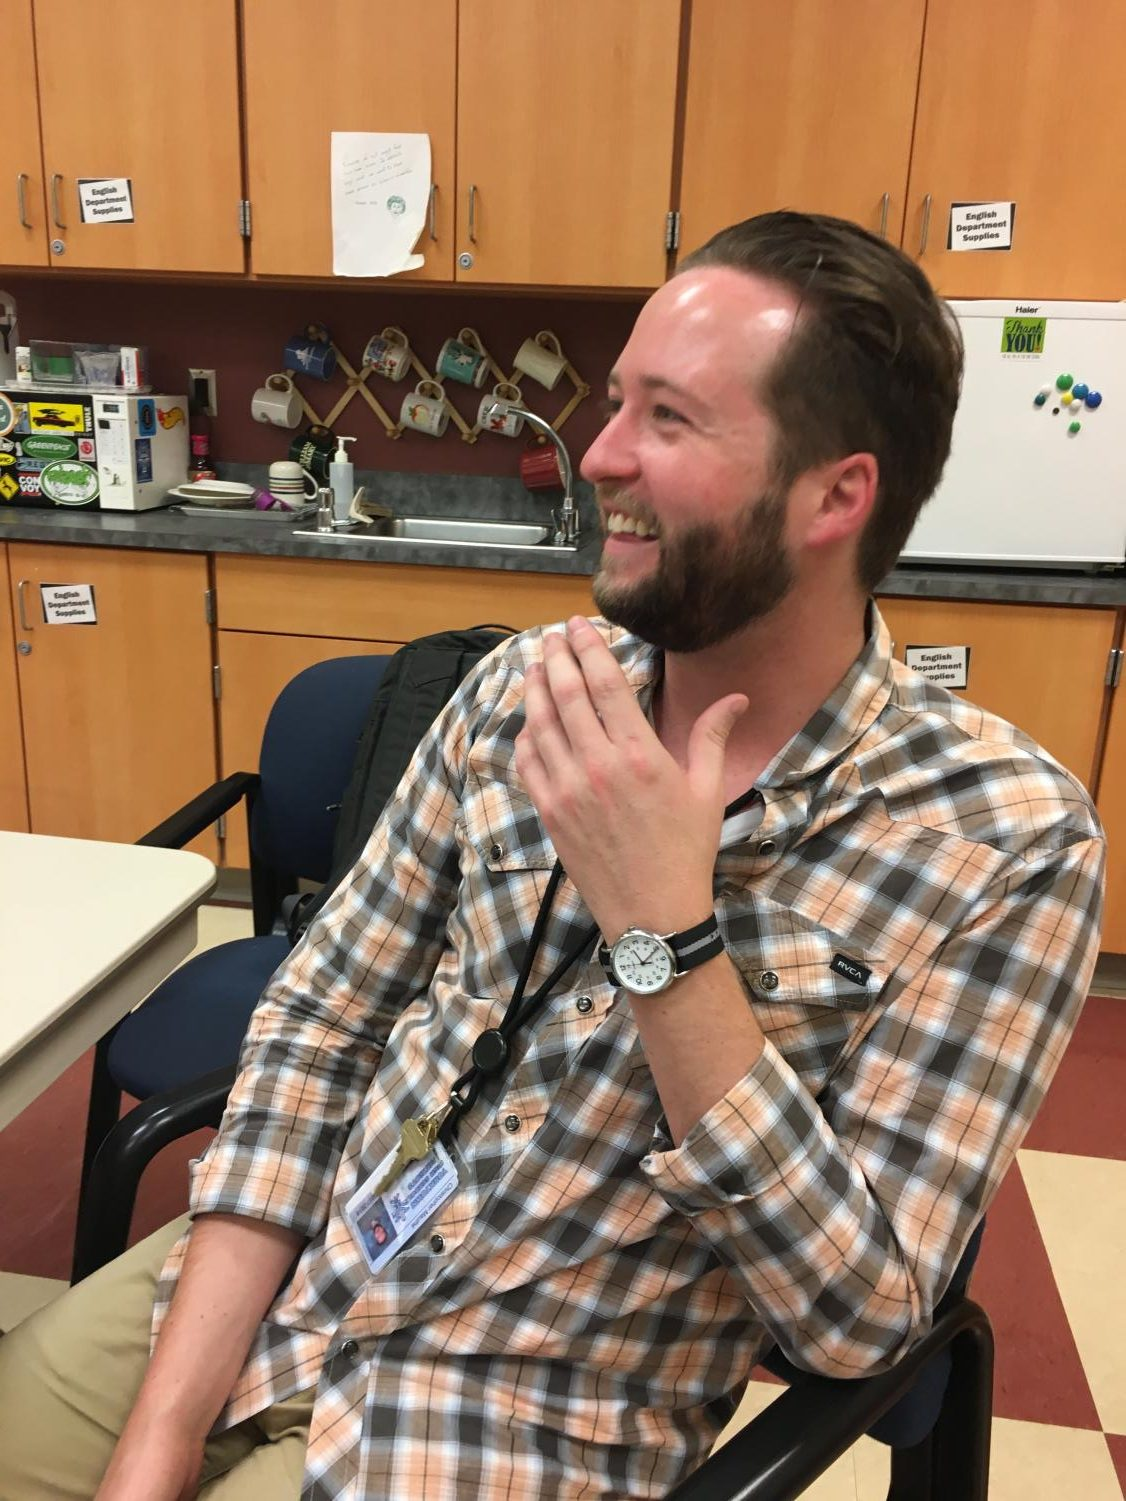 After moving to Portland, Oregon, teacher Chris Mauthe realized how much he missed working with students.